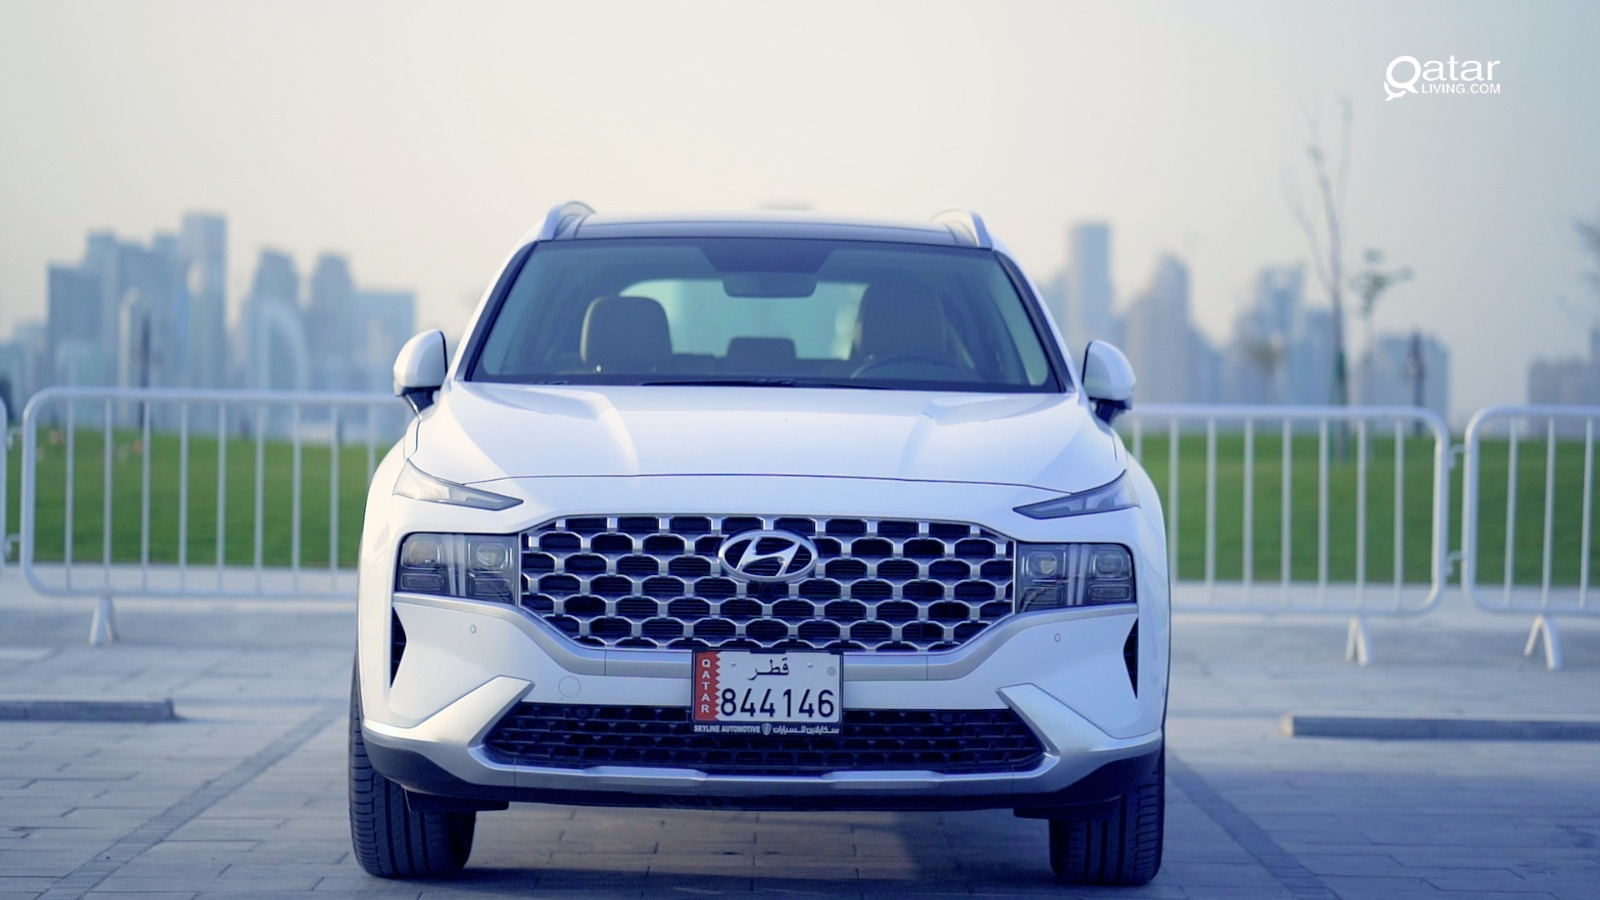 WATCH: See clearly in any situation with Hyundai's 2021 Santa Fe